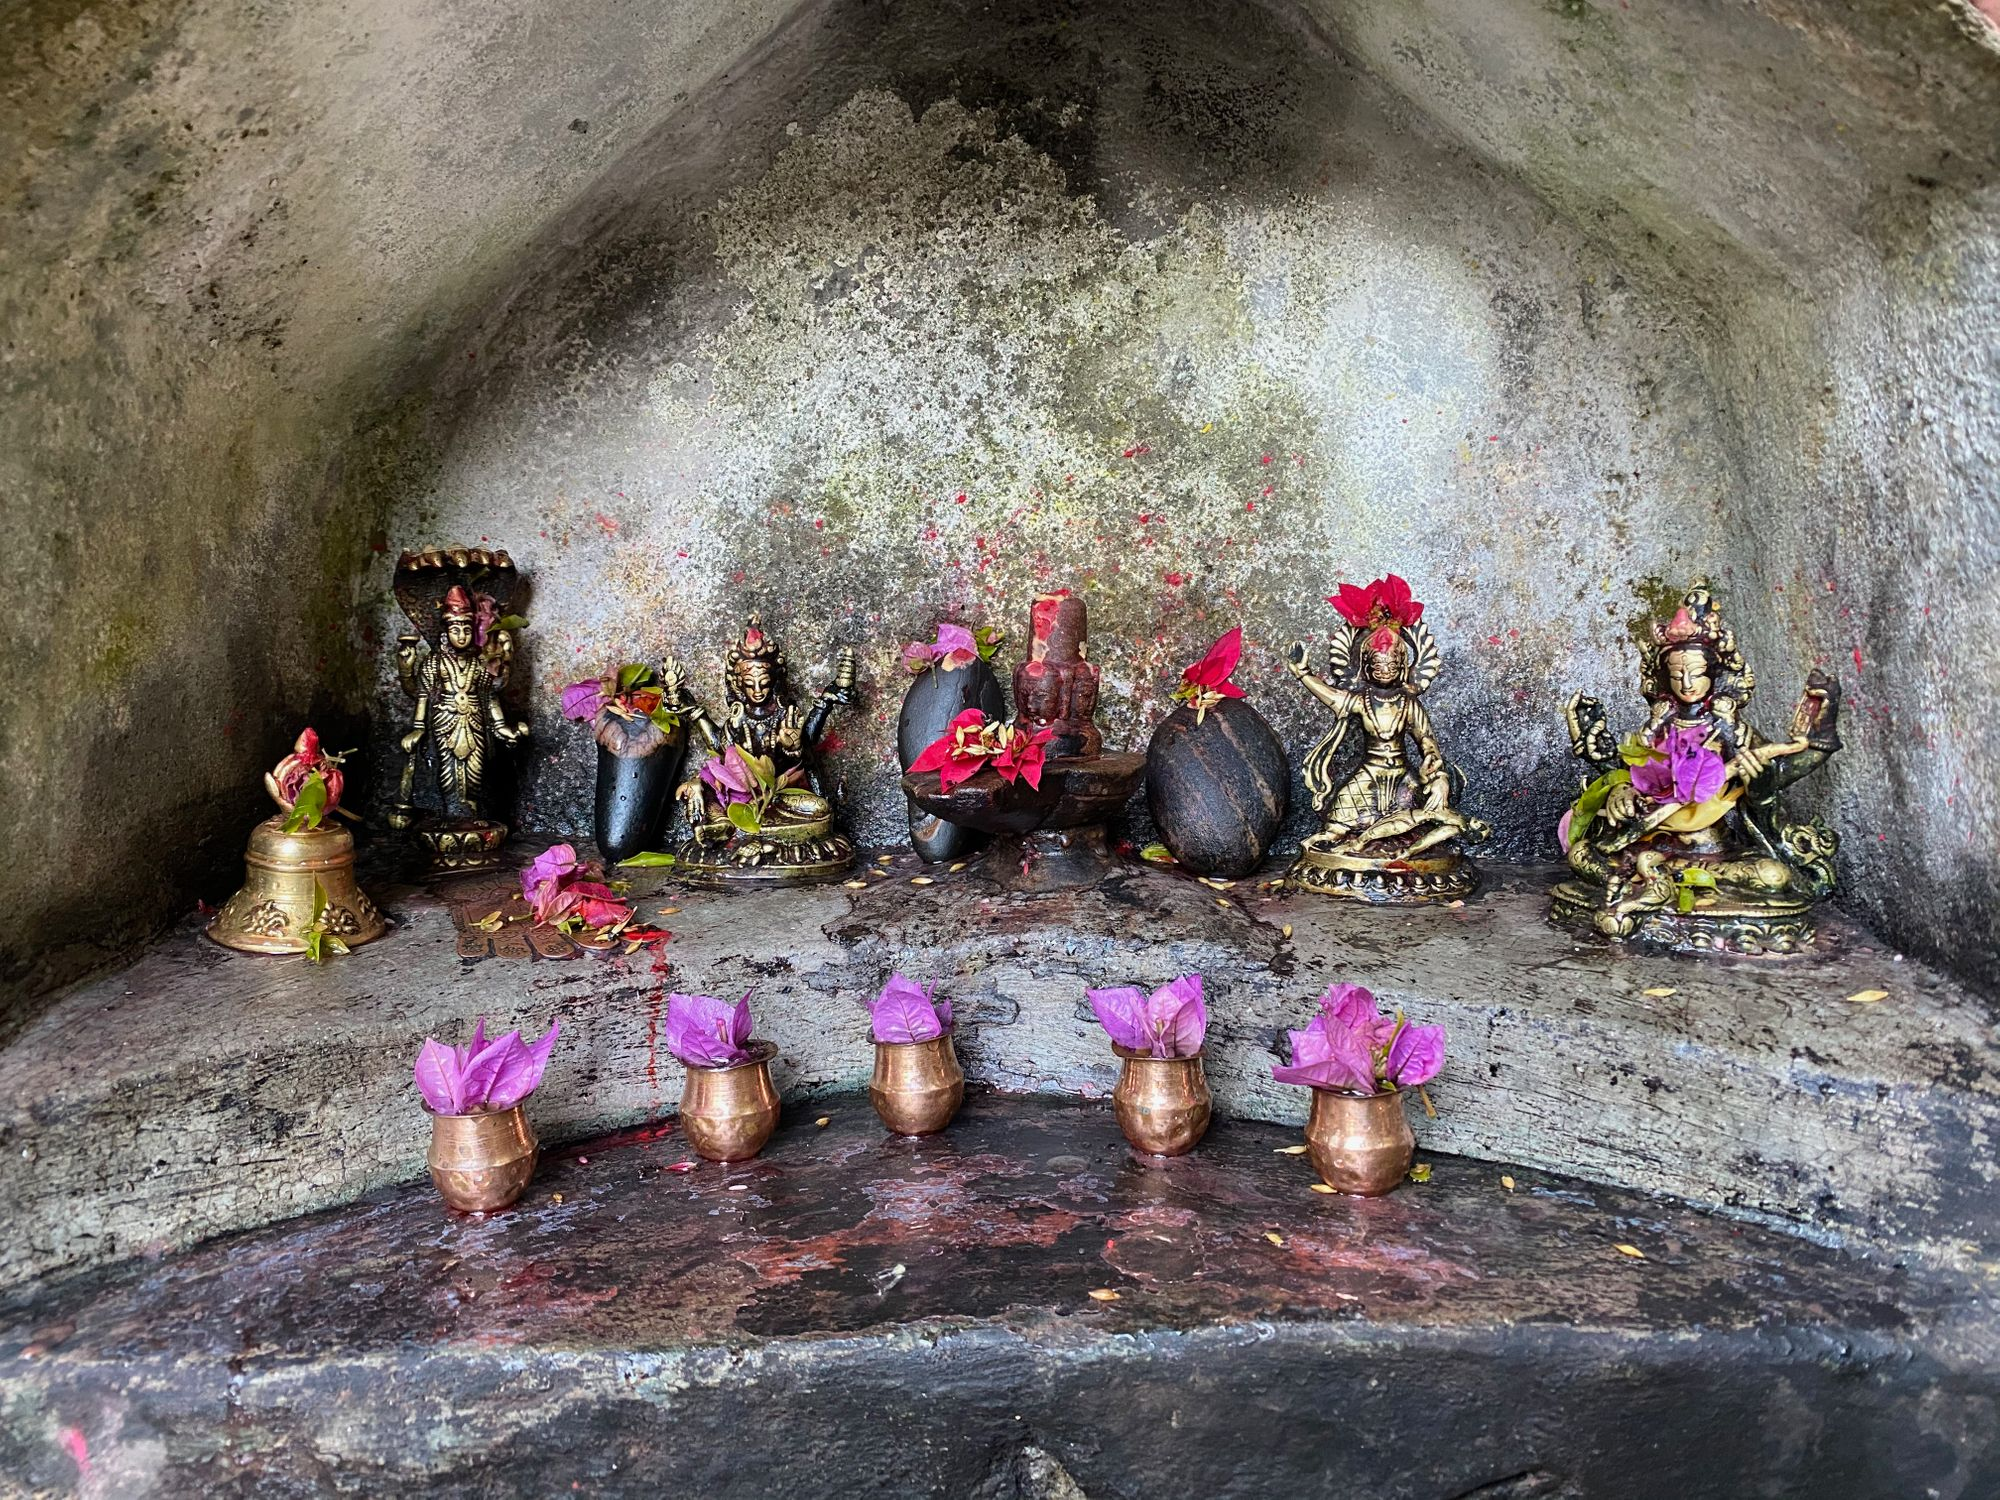 At a hillside shrine